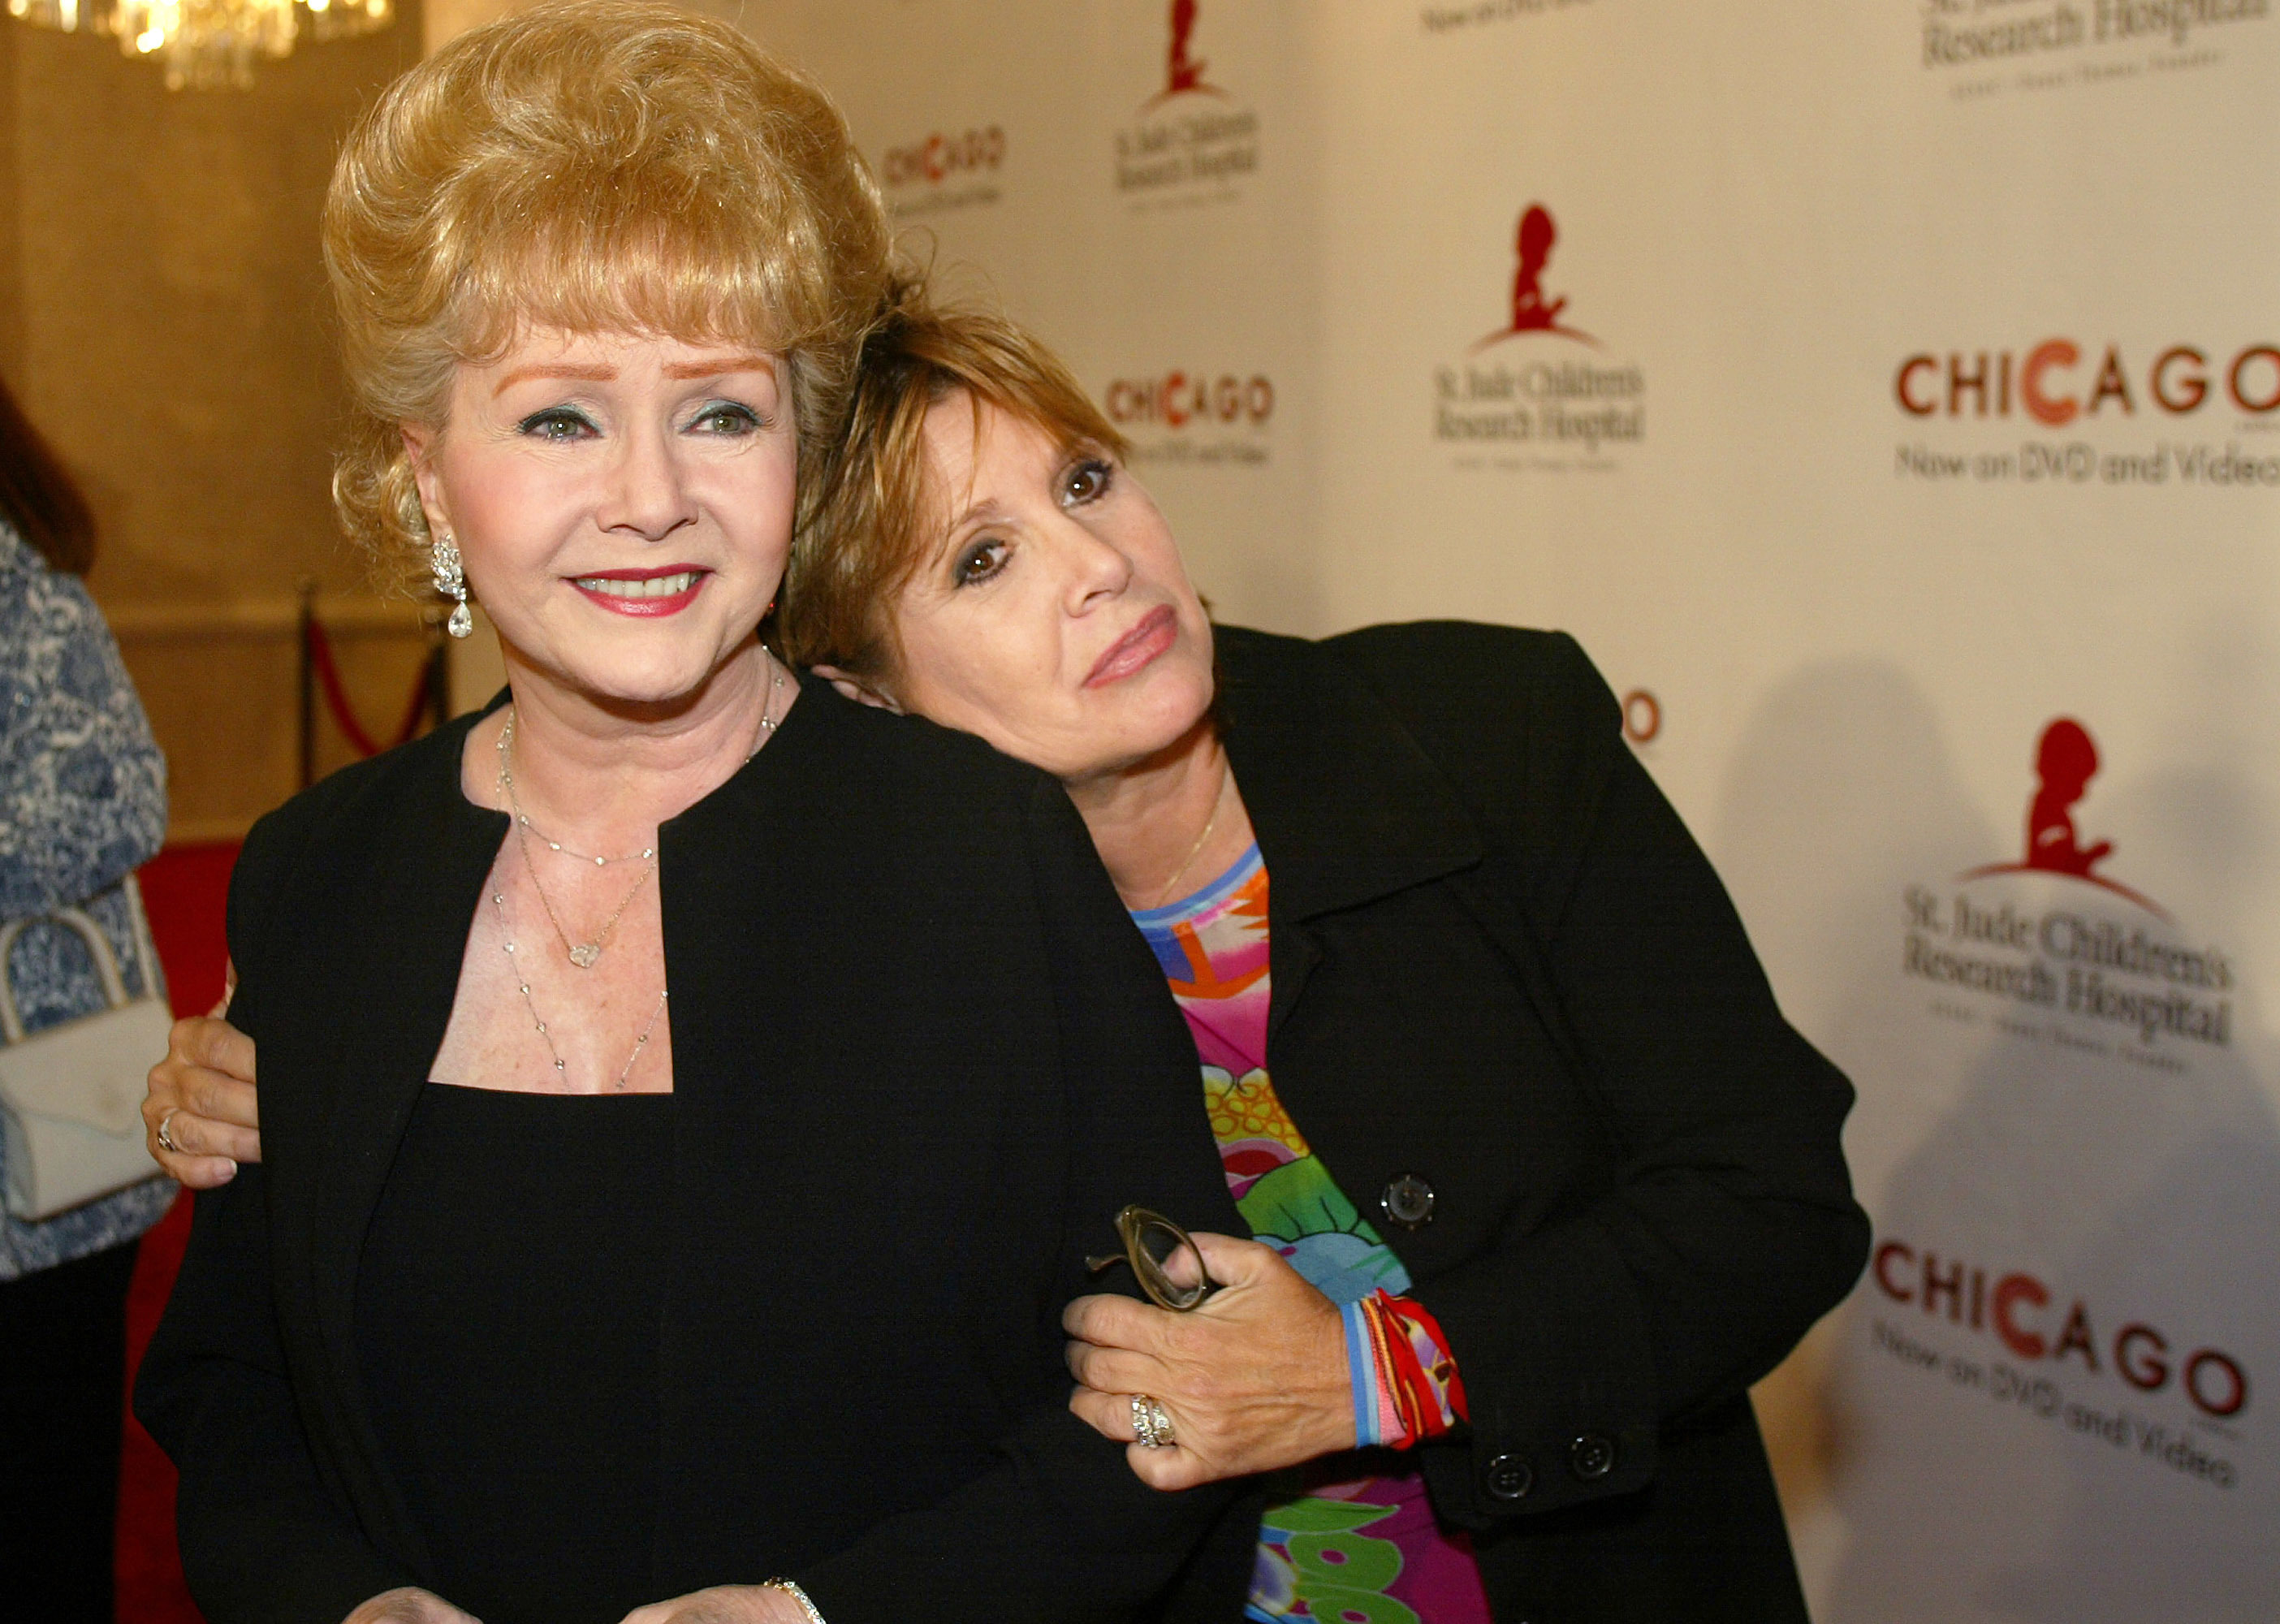 Debbie Reynolds, left, and daughter Carrie Fisher are shown together in this Aug. 19, 2003 file photo. (AP Photo/Jill Connelly)